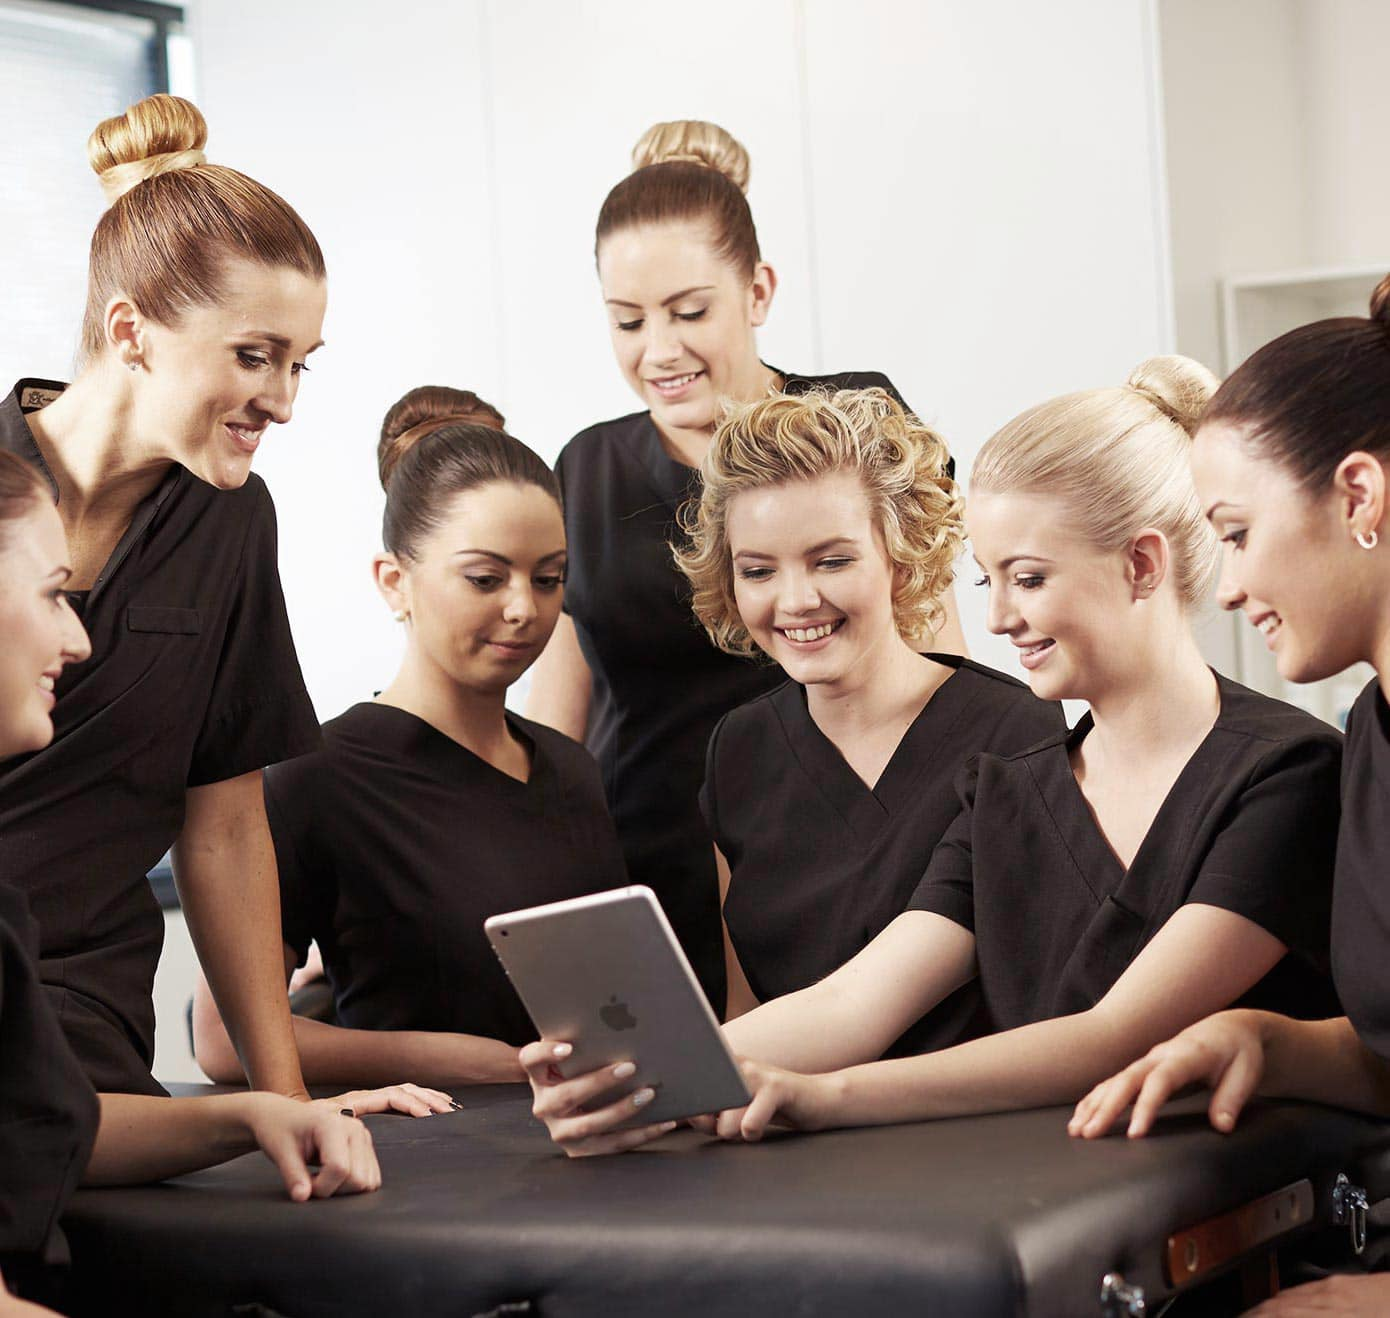 Beauty Academy: Your Student Life Expectations